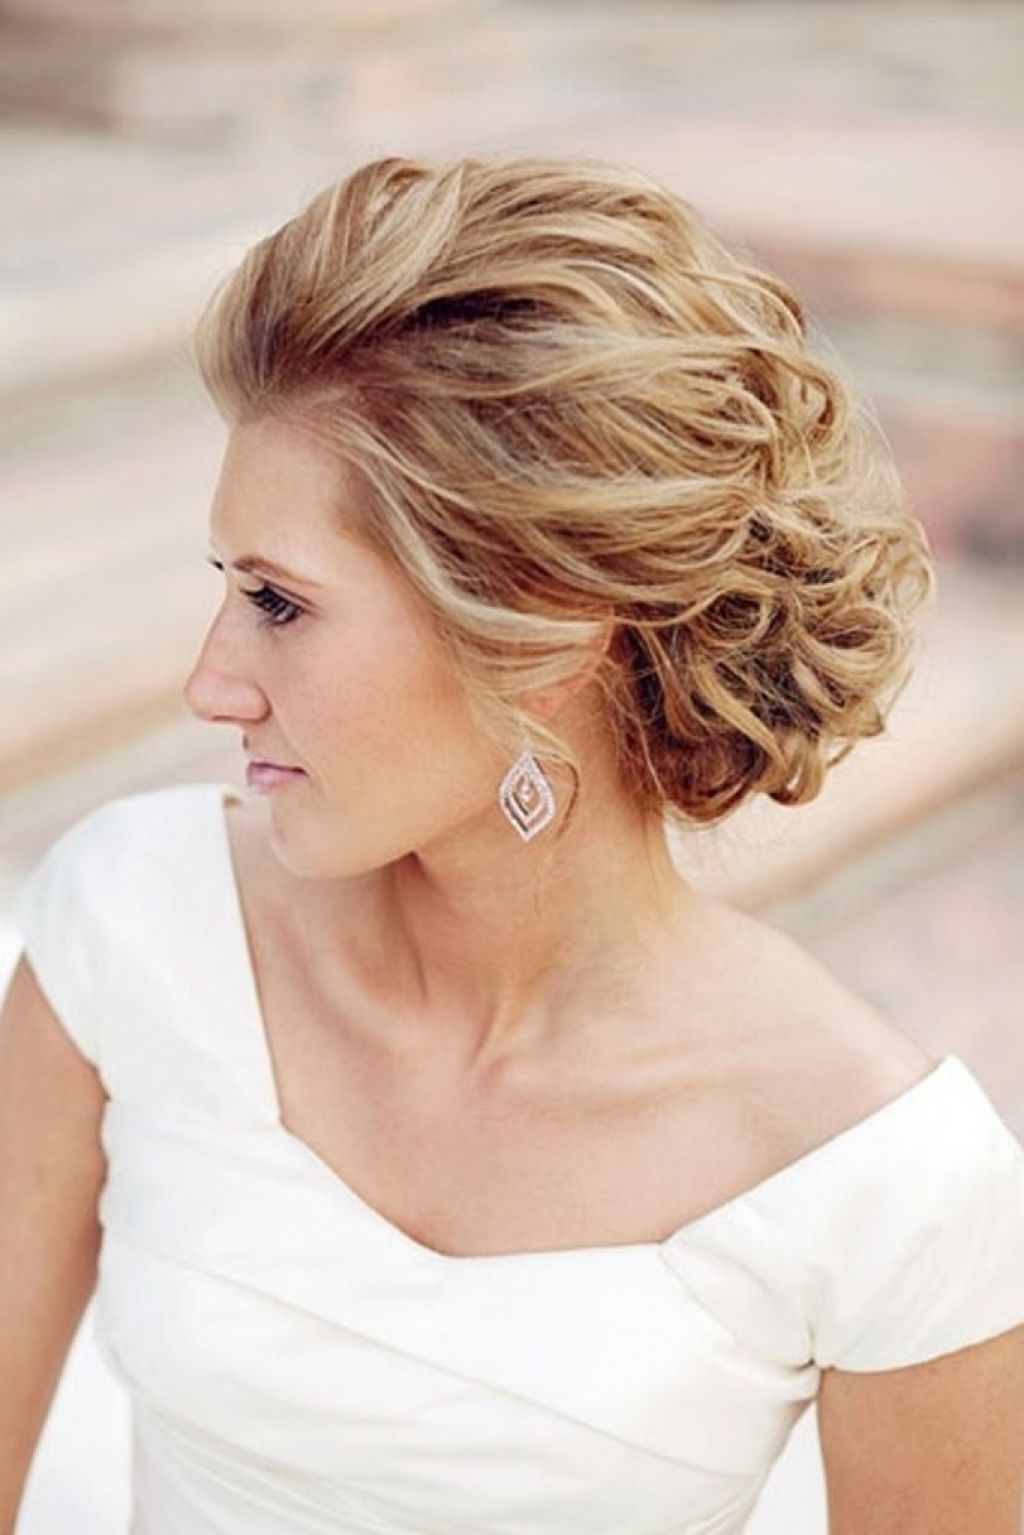 Bridesmaid Hairstyles For Medium Length Hair Wedding Design Ideas Within Most Popular Wedding Hairstyles For Medium Hair For Bridesmaids (View 9 of 15)